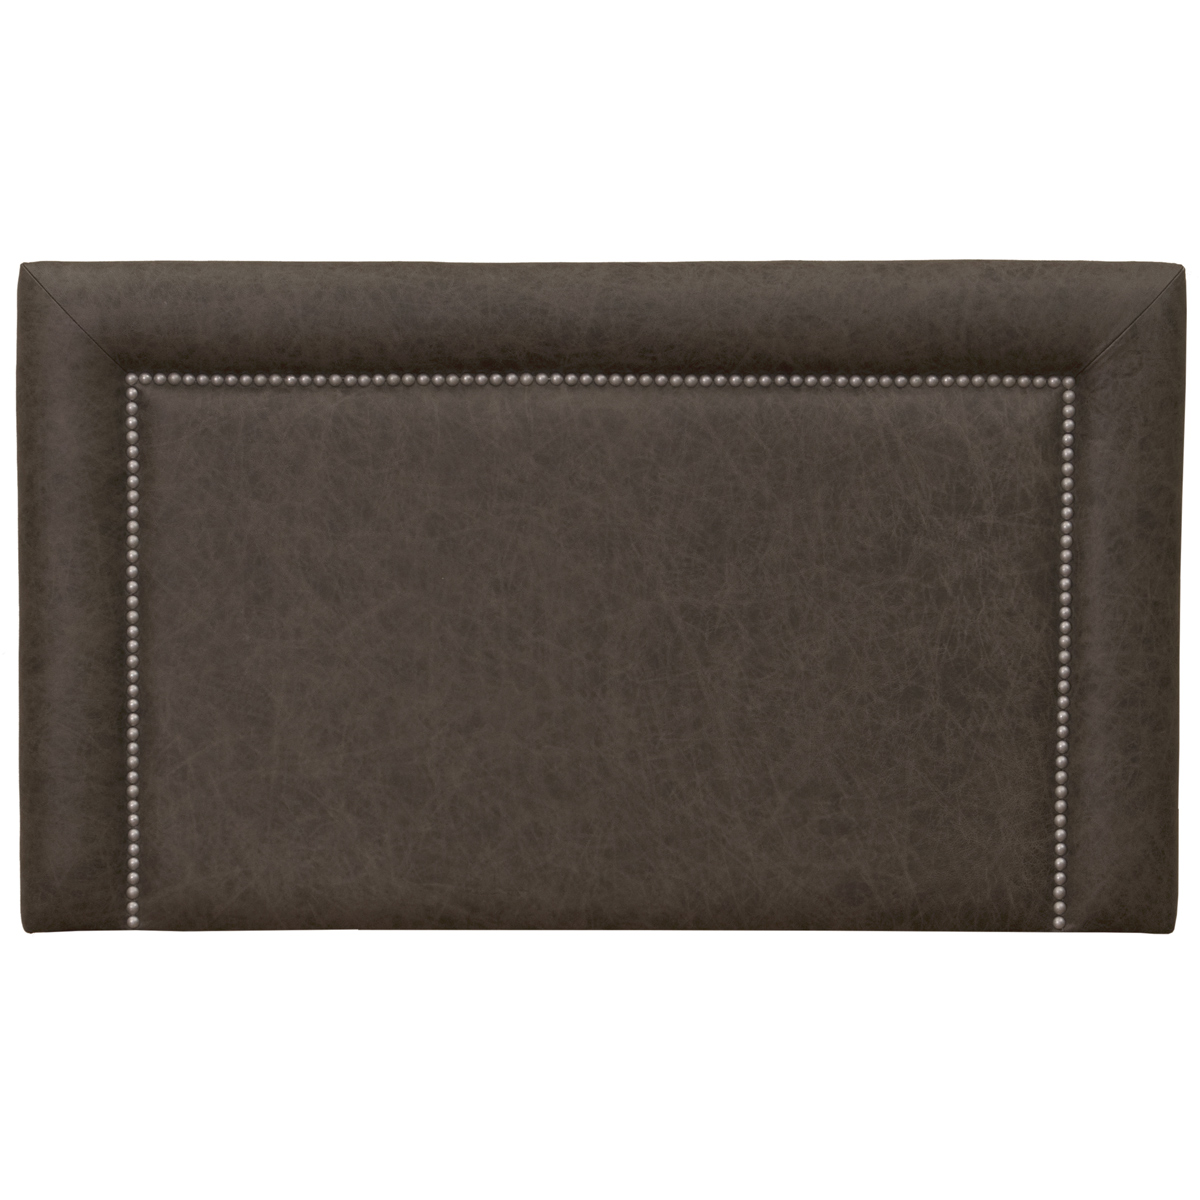 Black Forest Decor Plateau saloon gray leather headboard ...